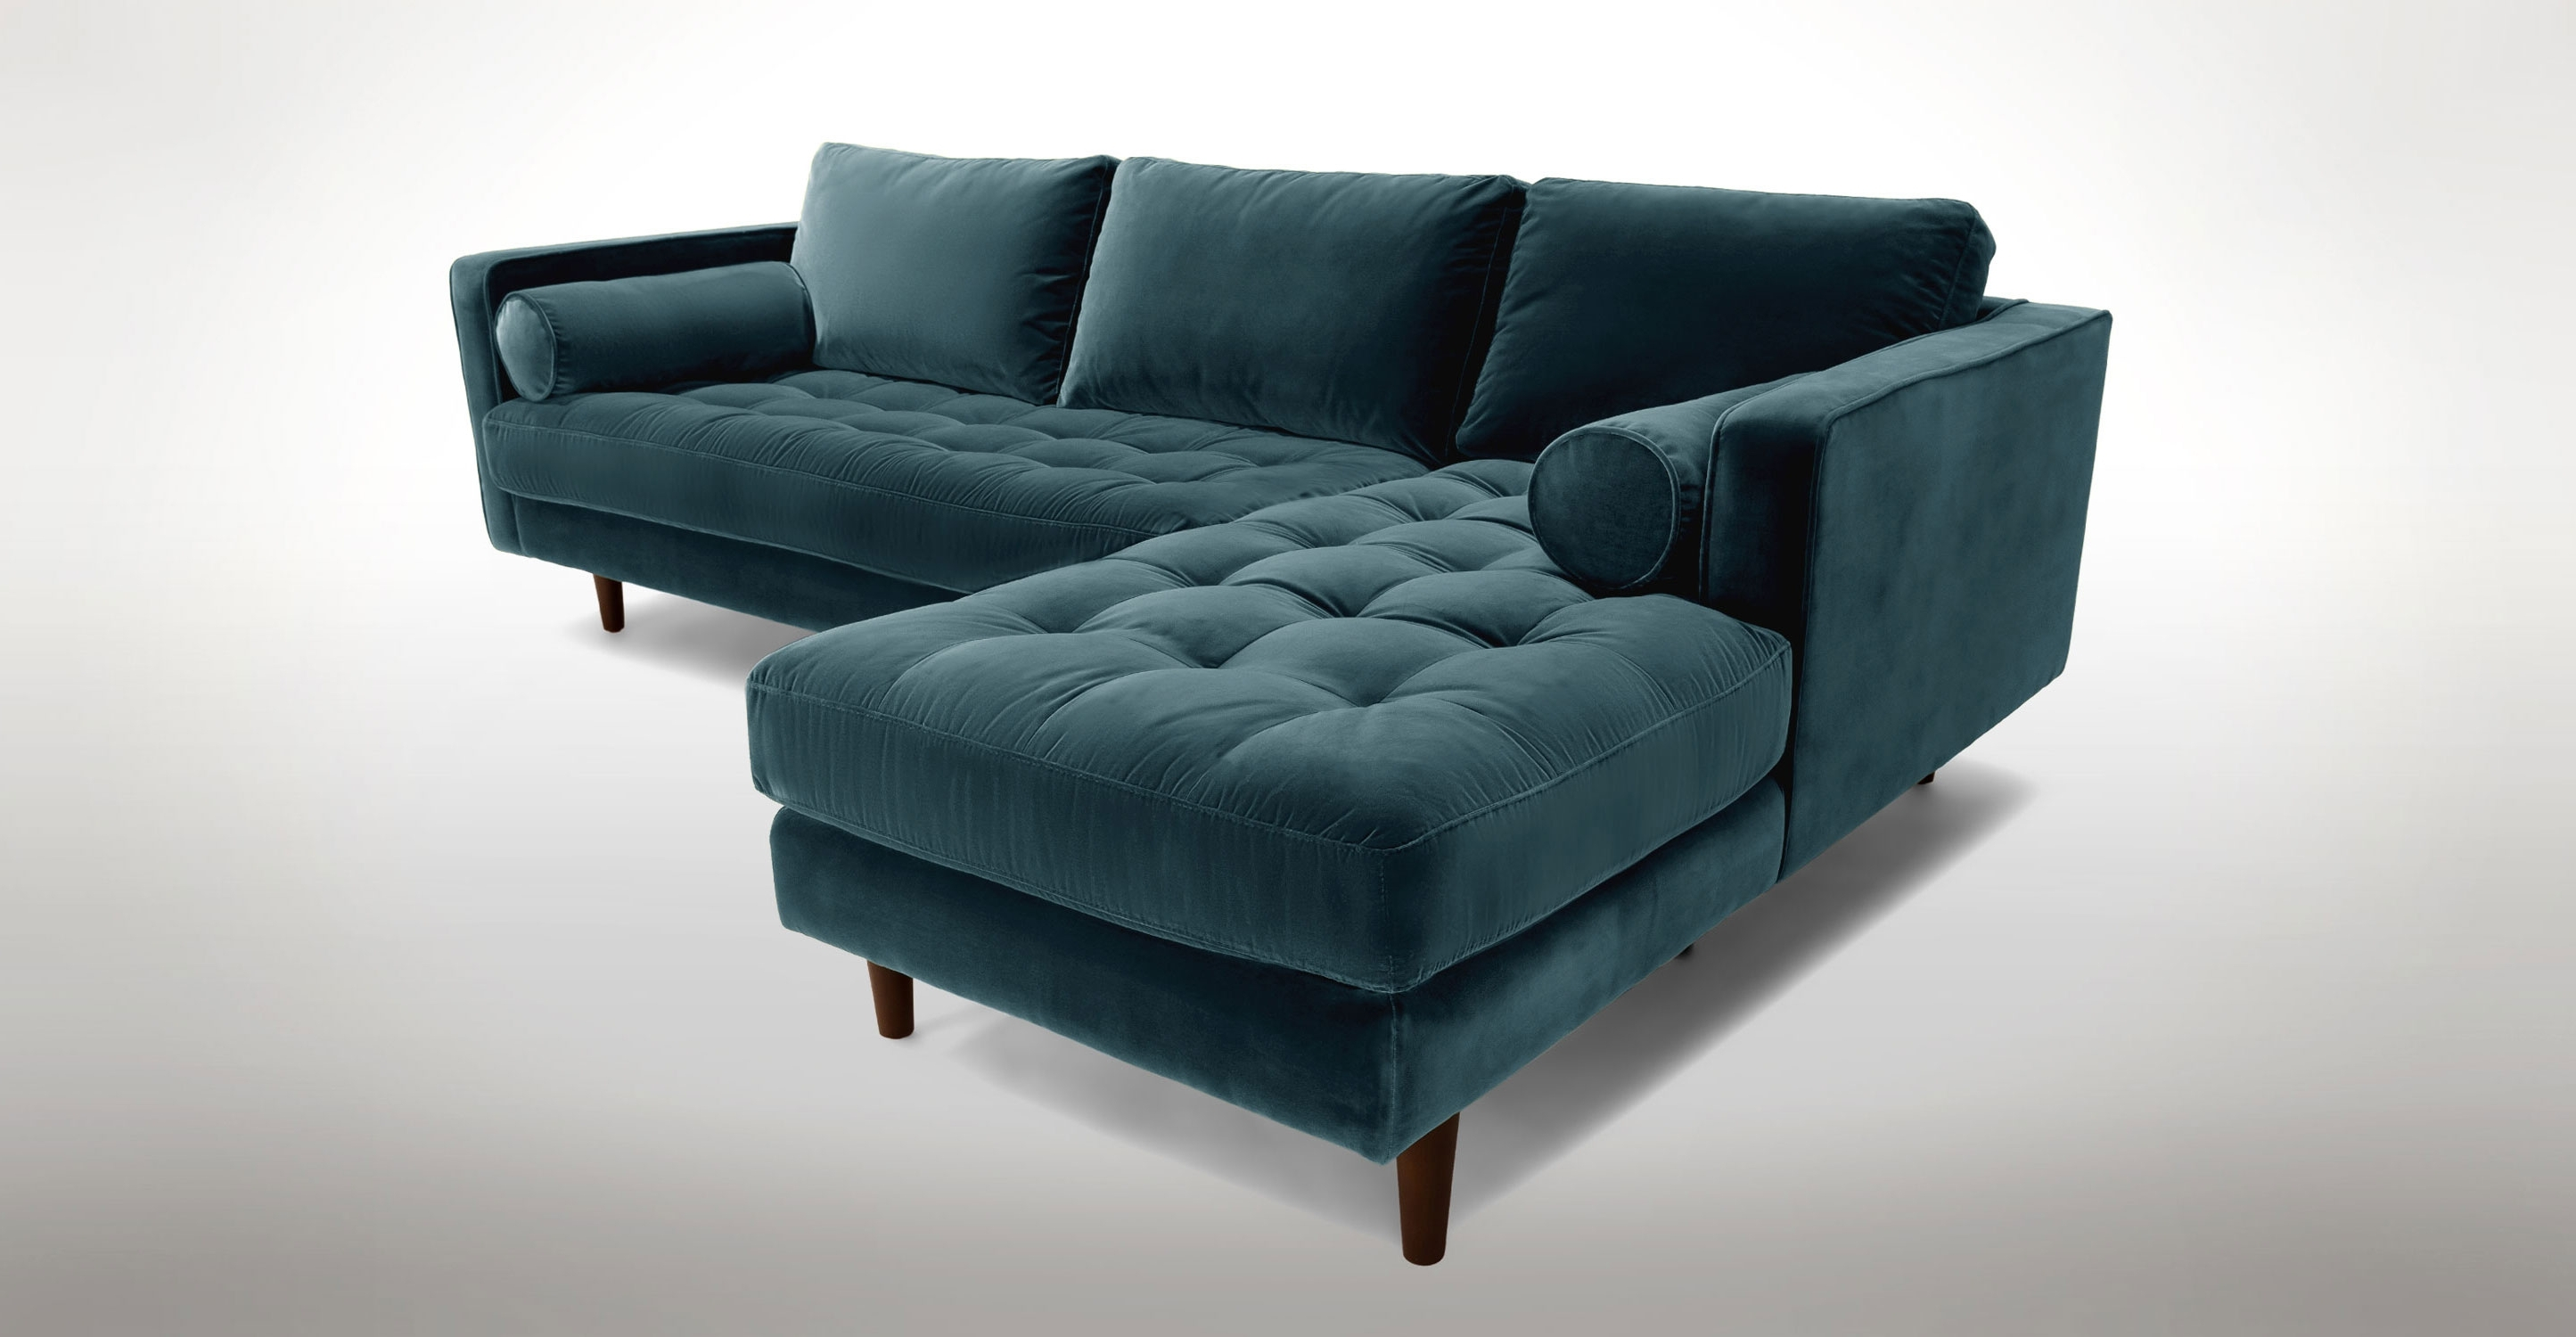 Article Sven Modern Pertaining To 2019 Green Sectional Sofas (View 5 of 20)